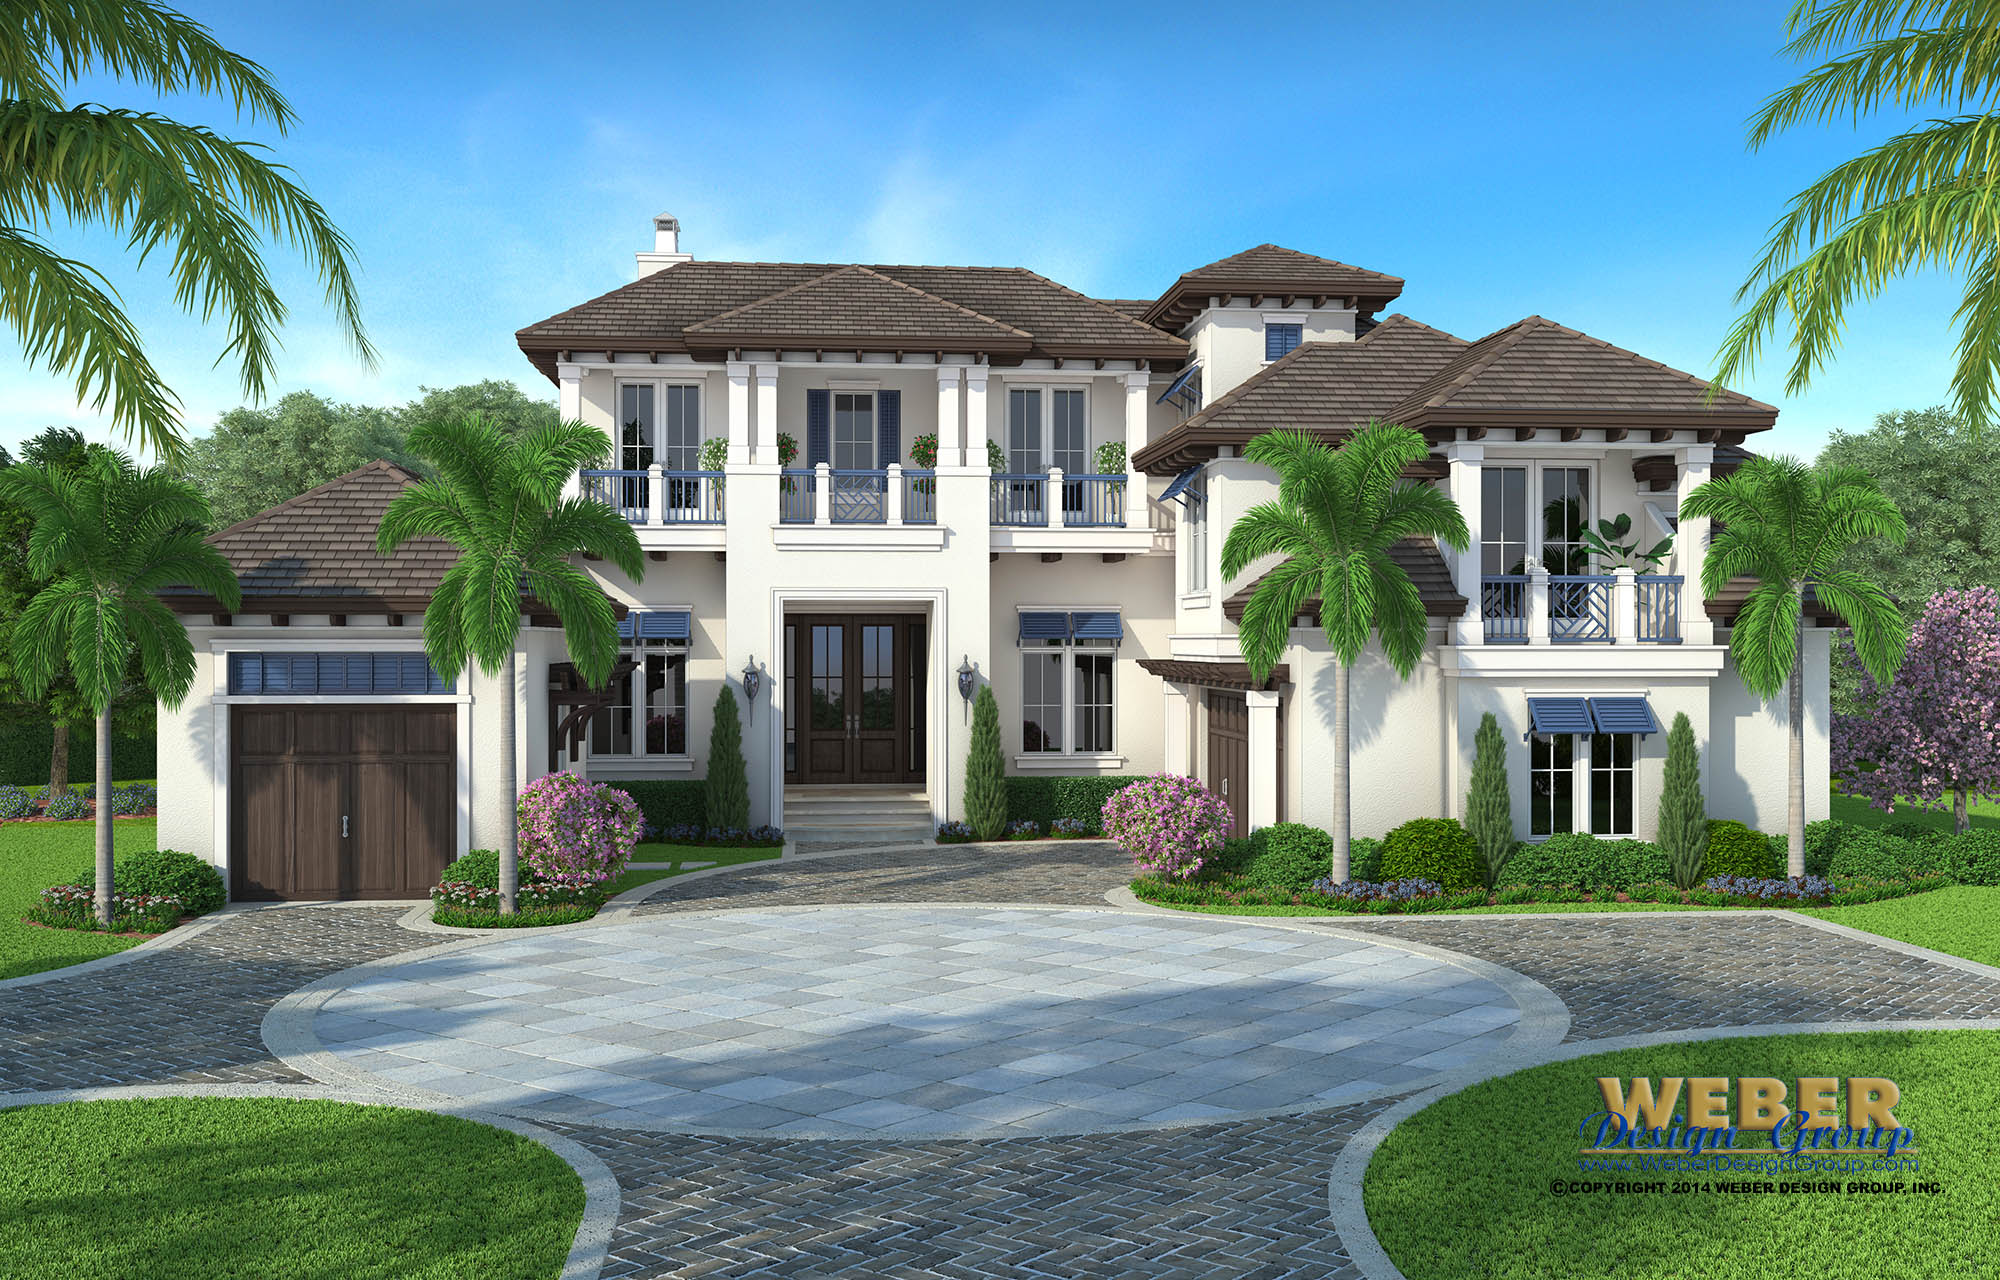 West indies house plan coastal contemporary home floor for West indies house plans